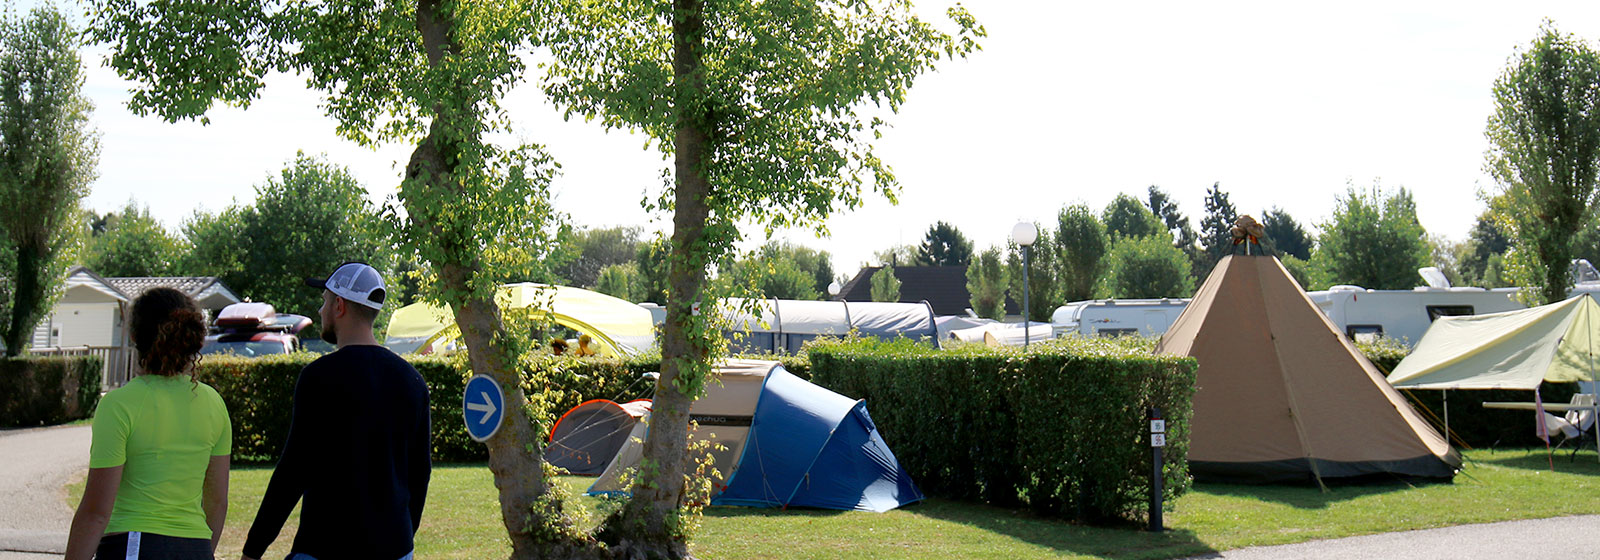 Lovely Emplacement Camping à Deauville Emplacement Camping En Normandie ...